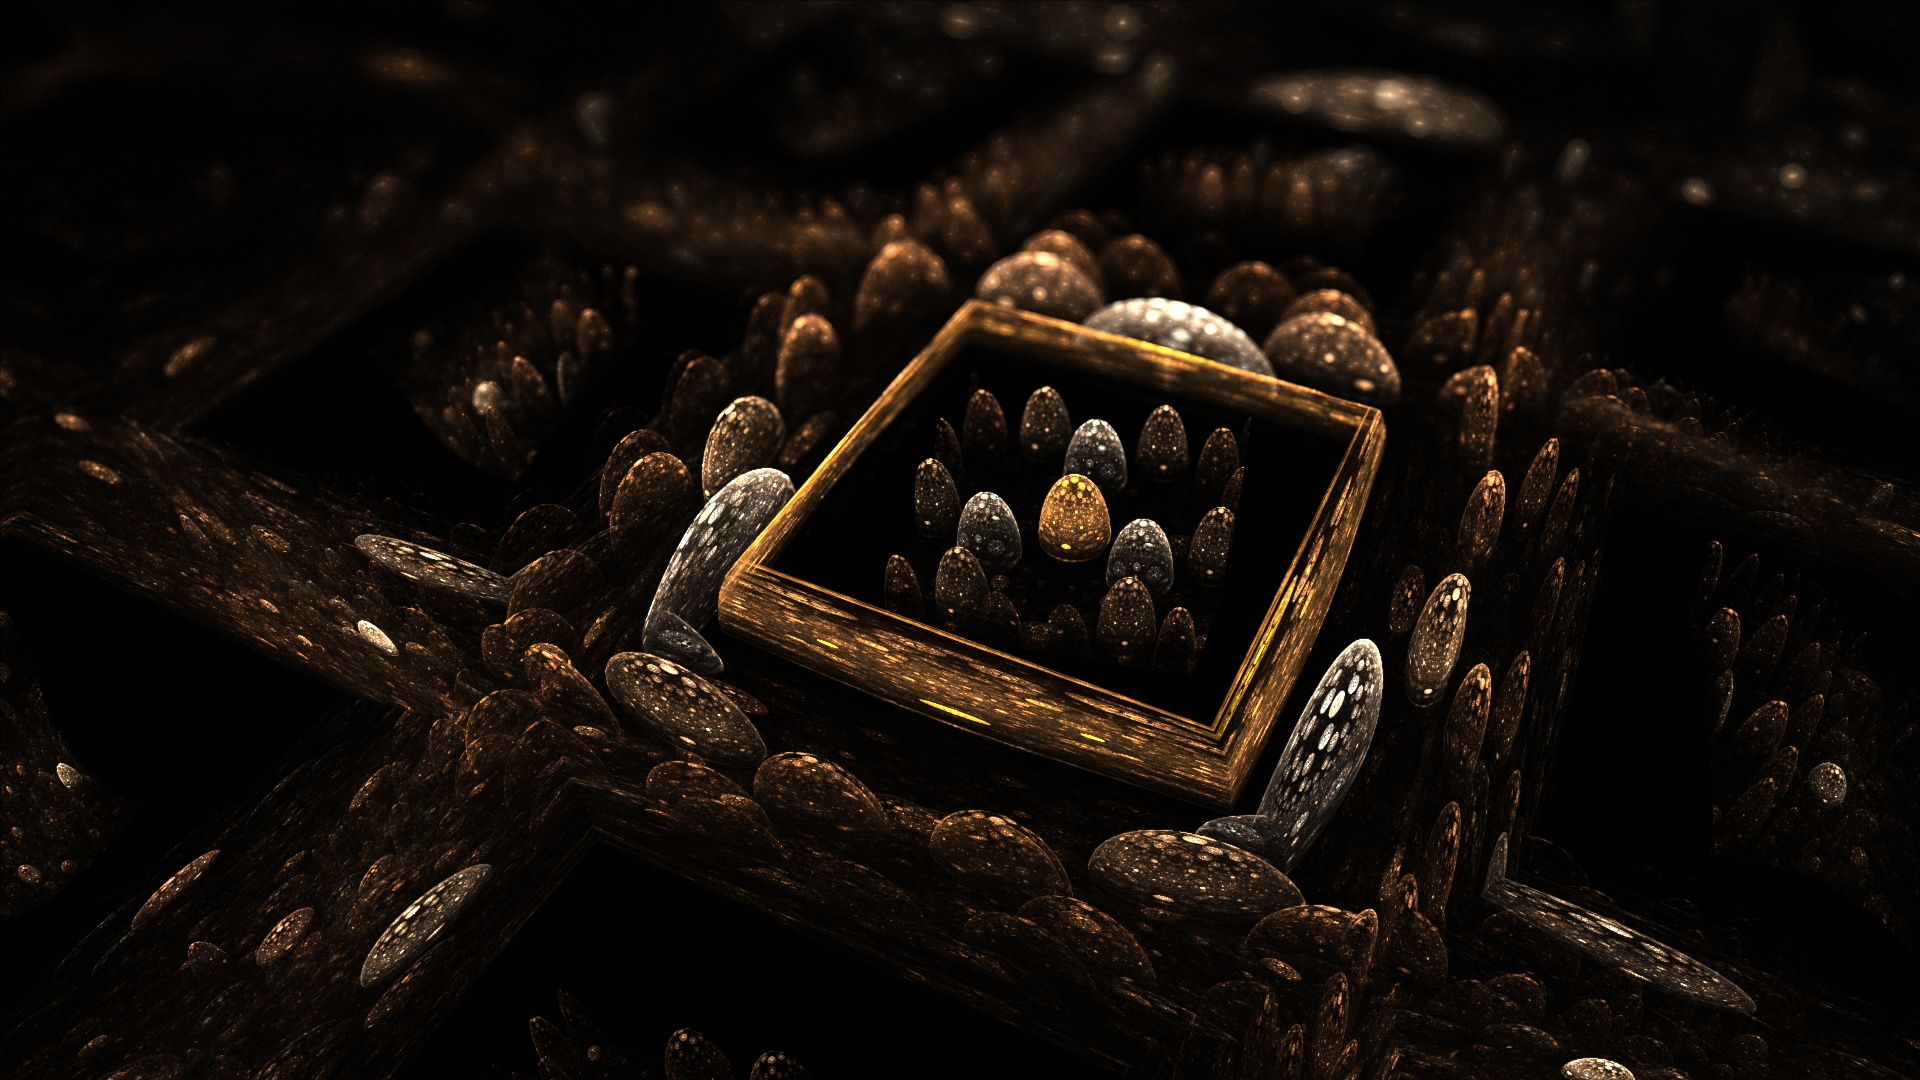 The golden egg by thargor6